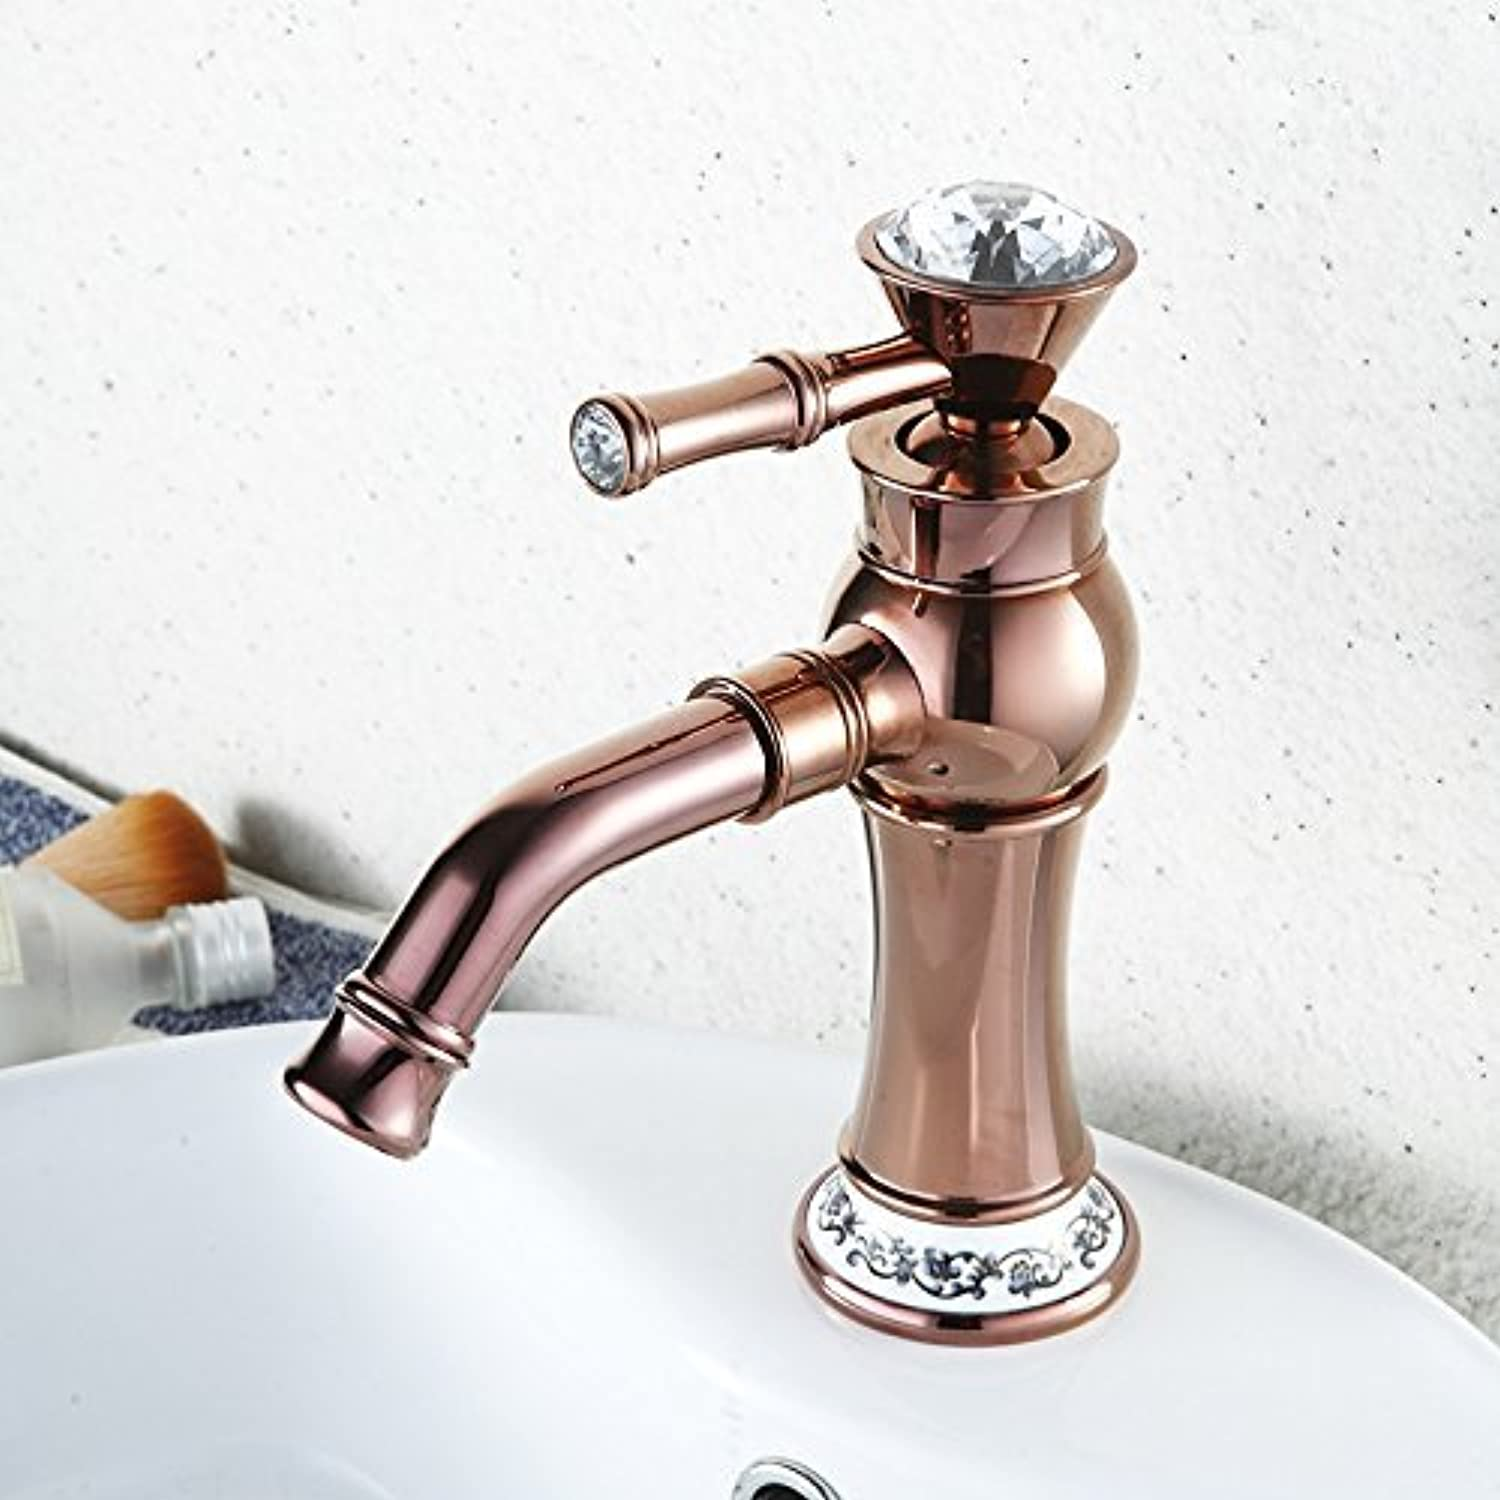 The wash Basin Bath Rooms Sinks Faucet Diamond Decoration Porcelain Single Hand Mixer for hot and Cold Water tap The tap